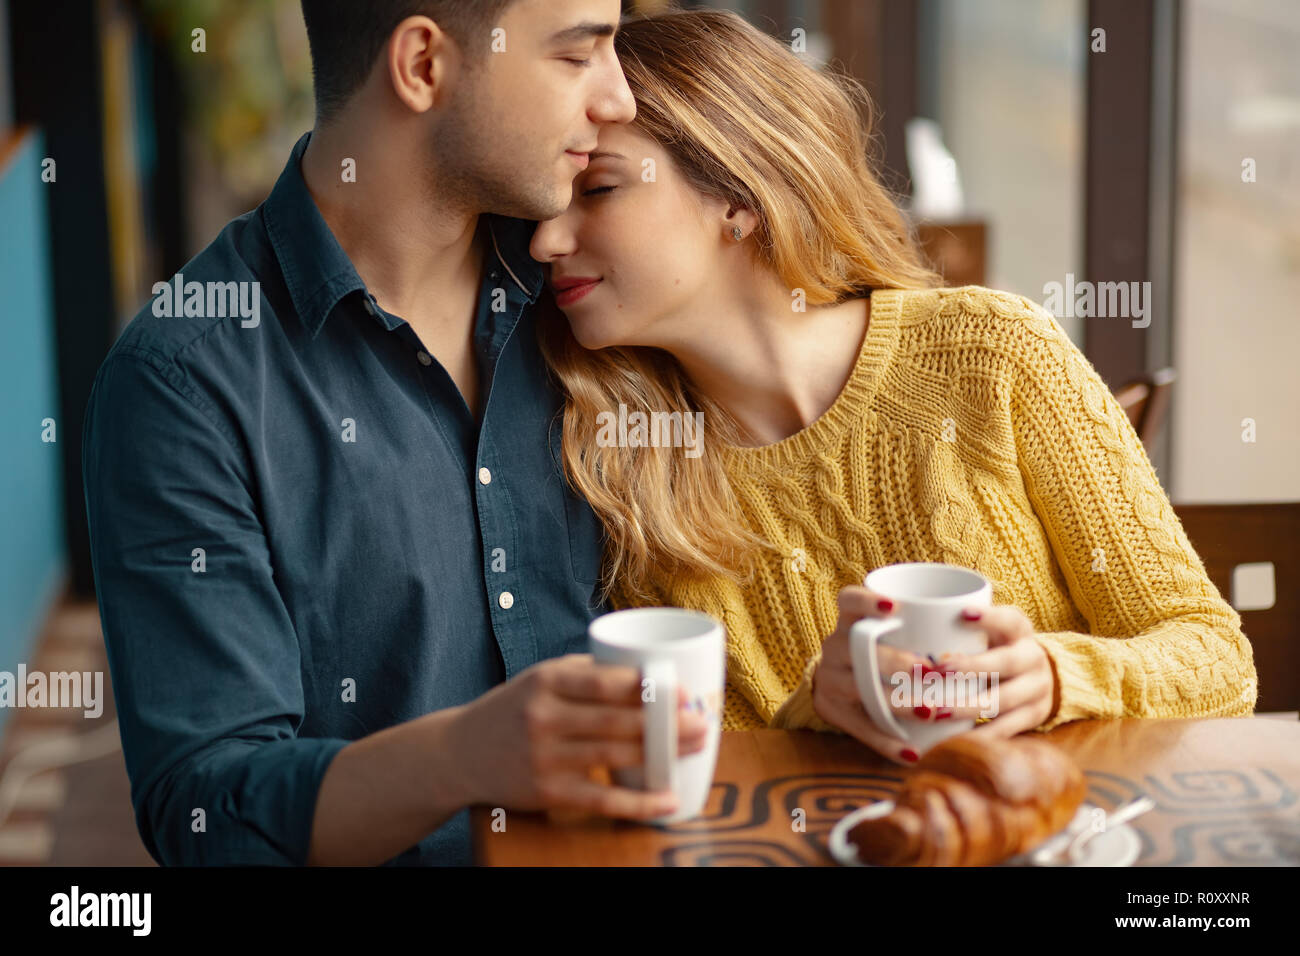 Kiss Cafe dating